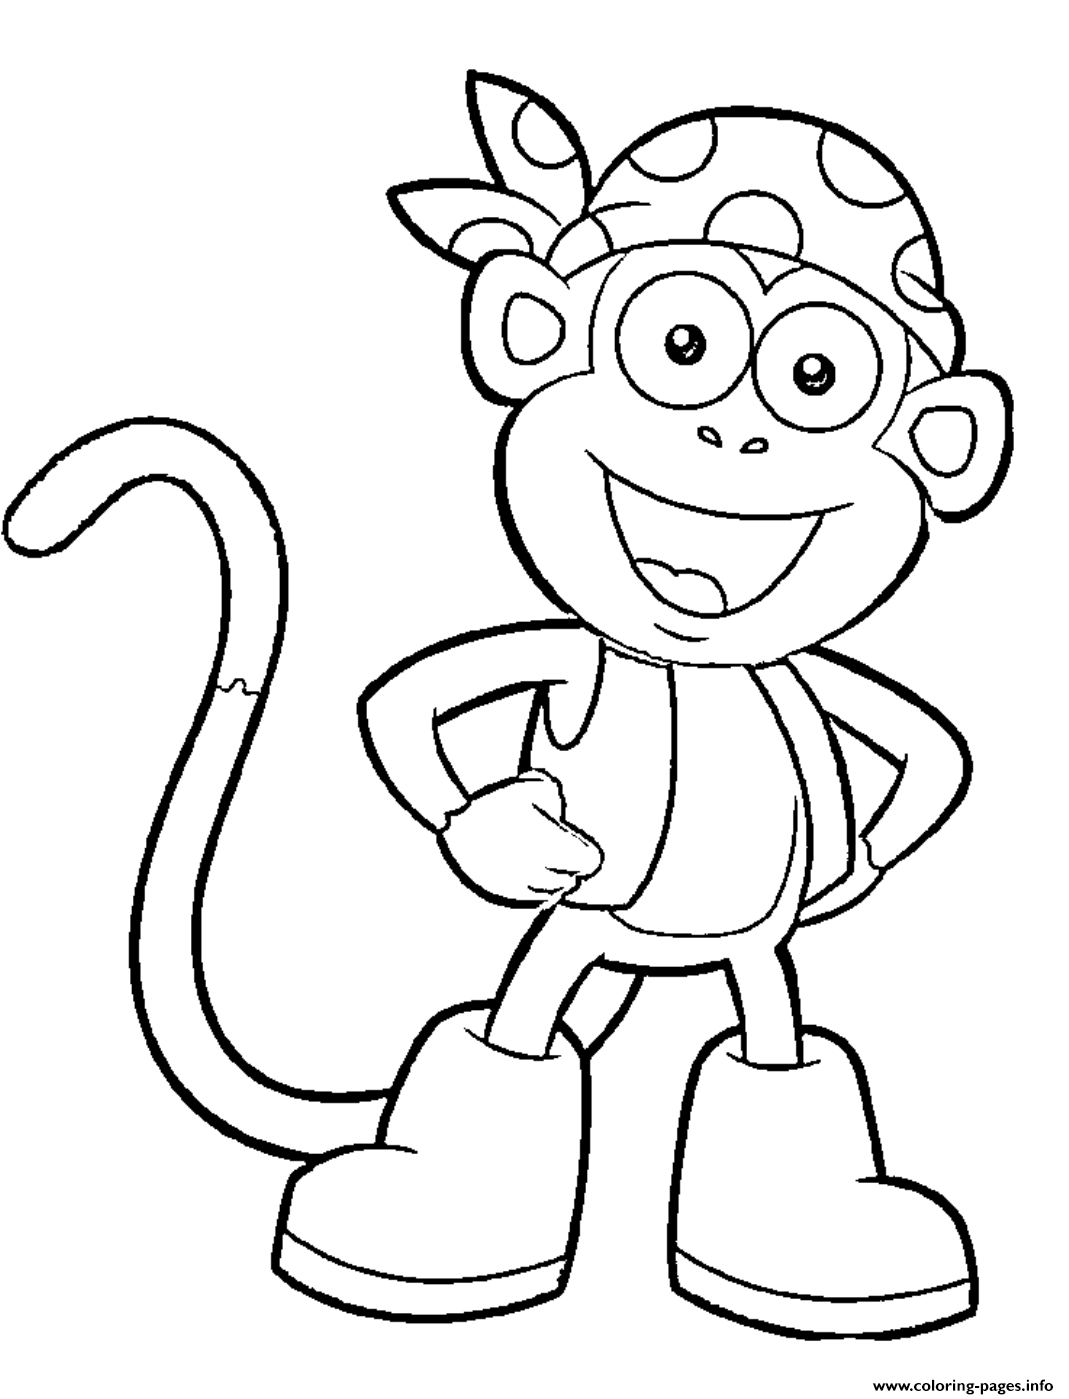 dora colouring pictures print dora printable s boots character451a coloring pages dora colouring pictures